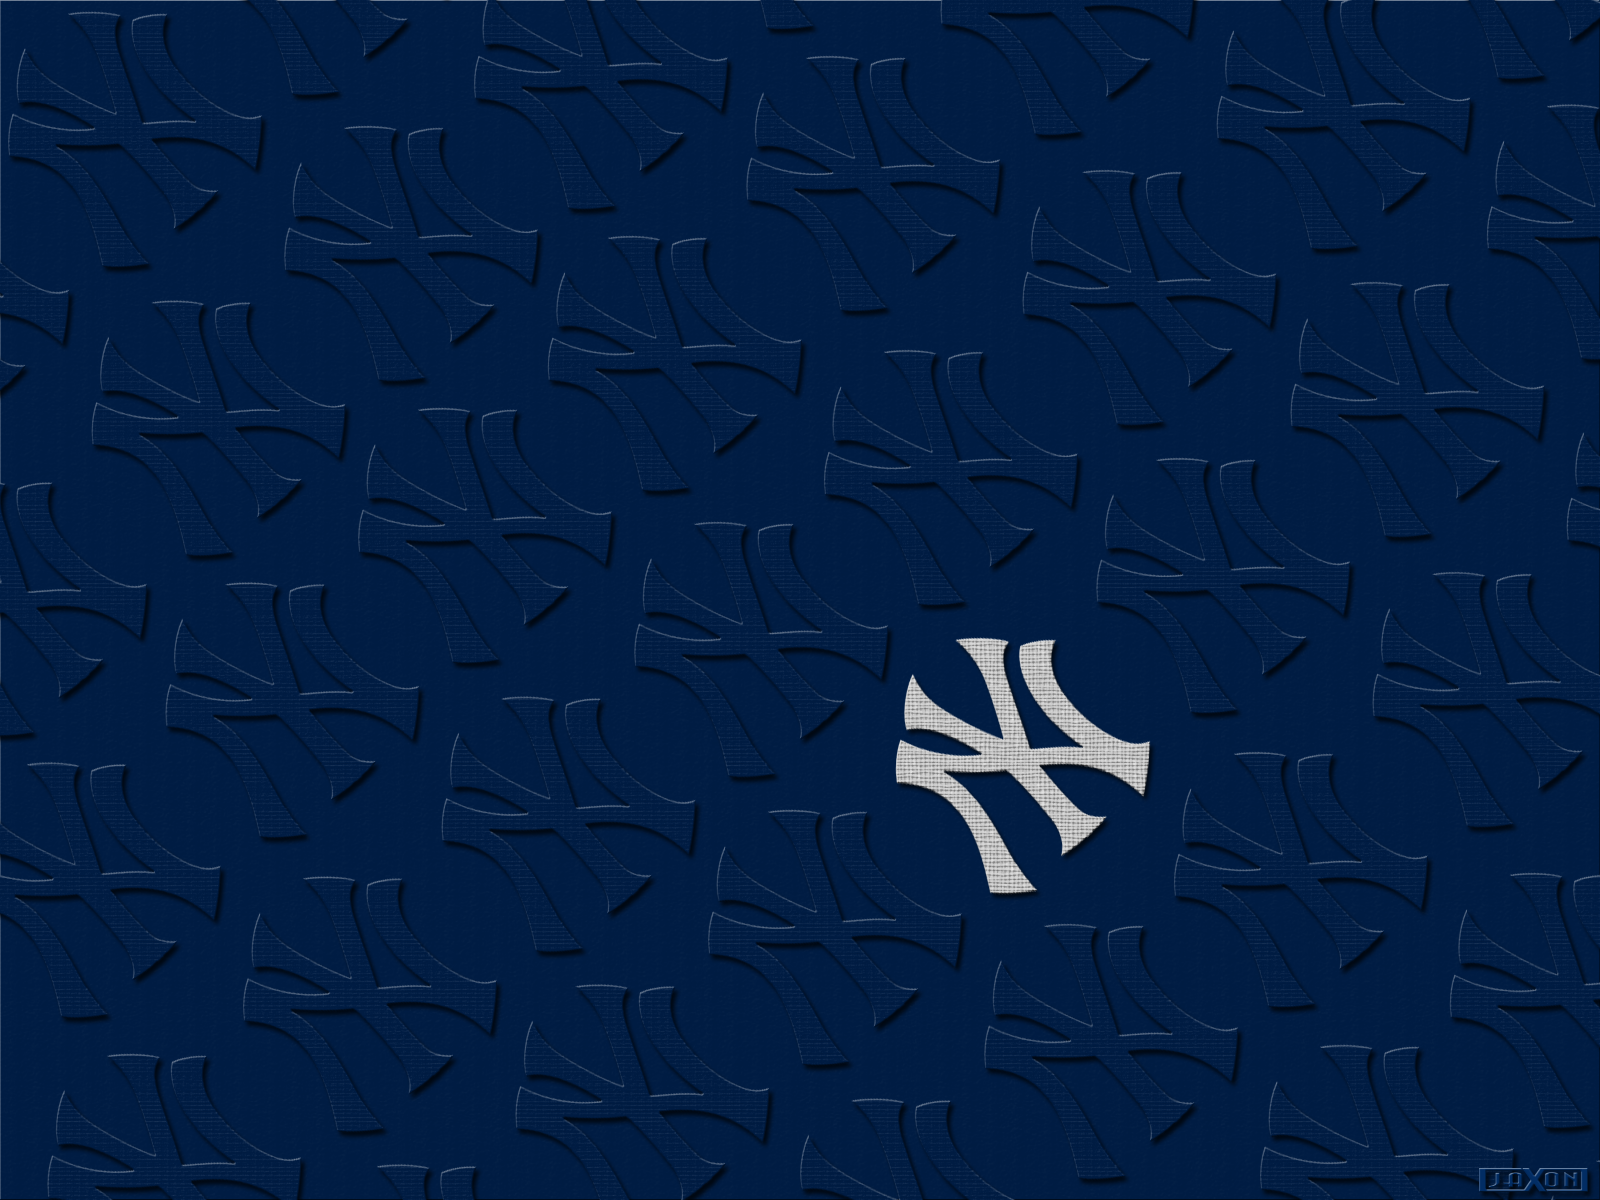 New York Yankees Logos by JayJaxon 1600 x 1200 1600x1200